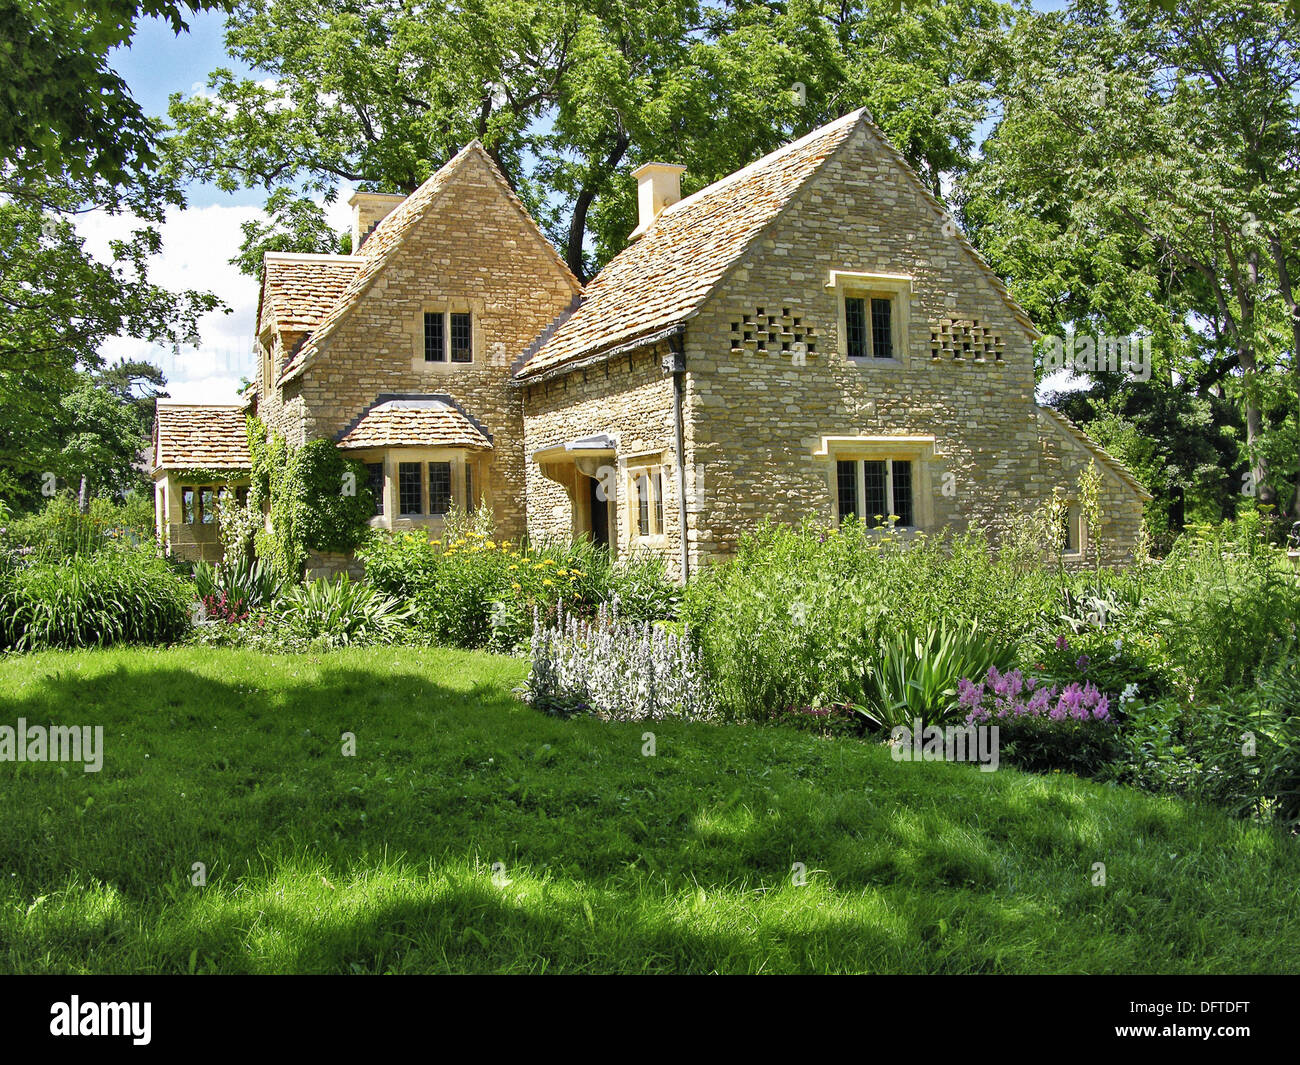 Cotswold Cottage at Historic Greenfield Village and Henry Ford